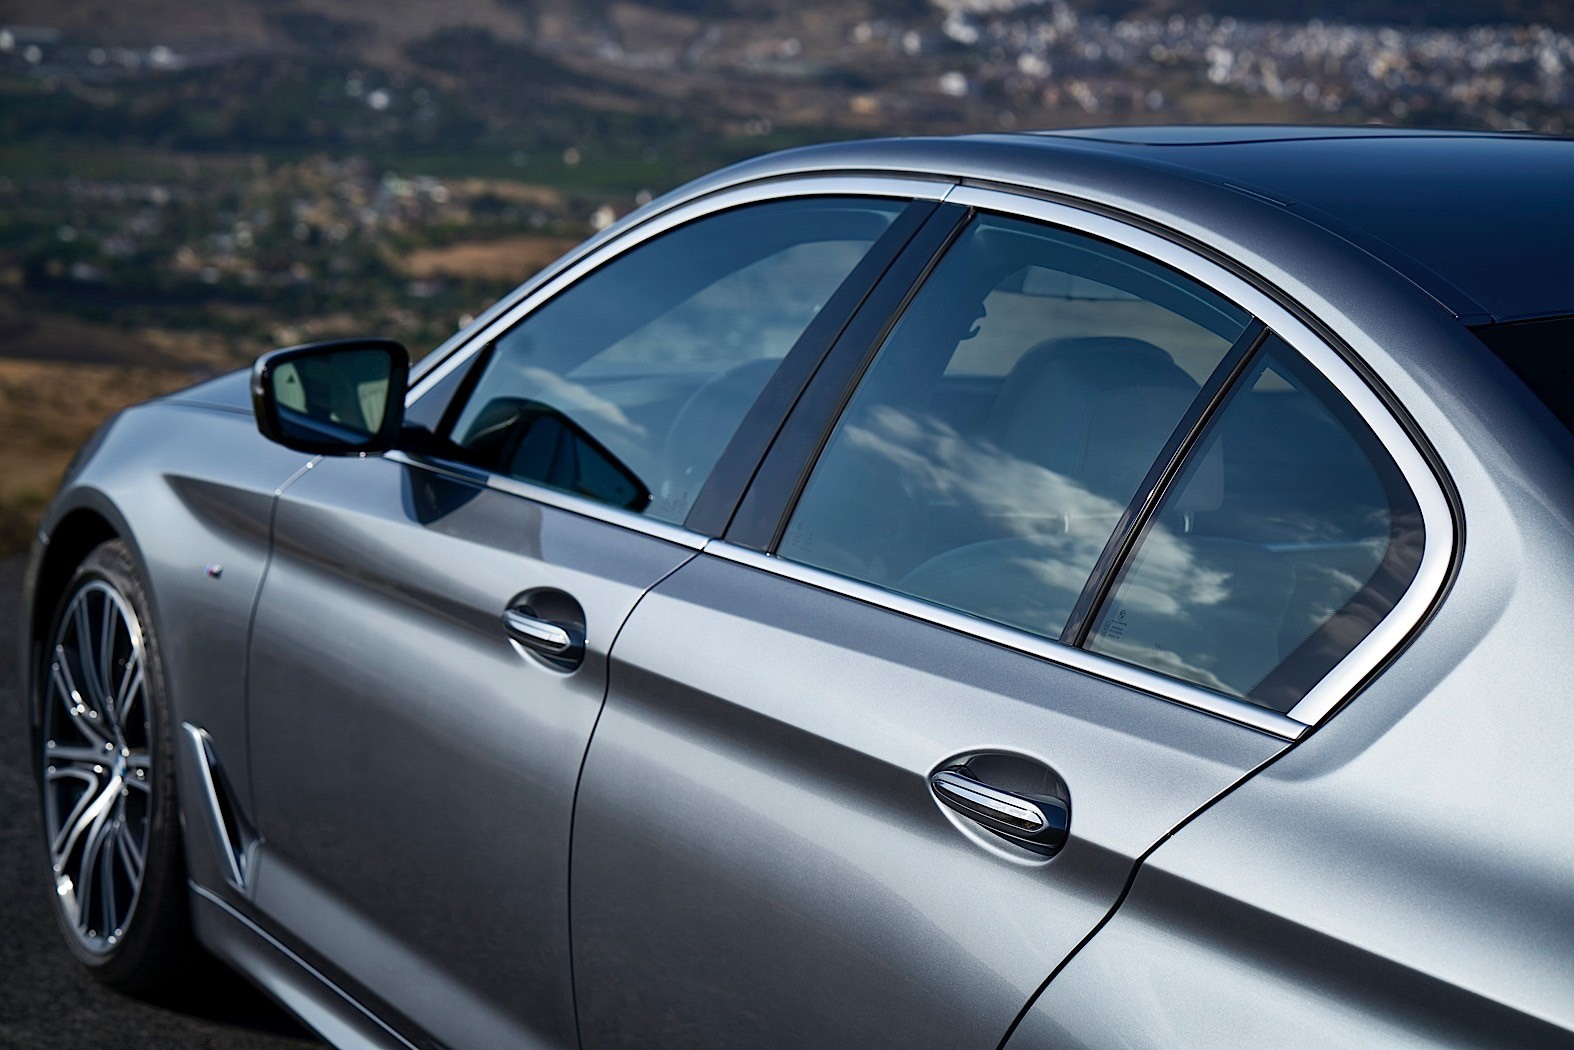 BMW Series Price Announced In Germany D Starts From - Bmw 5 series new price